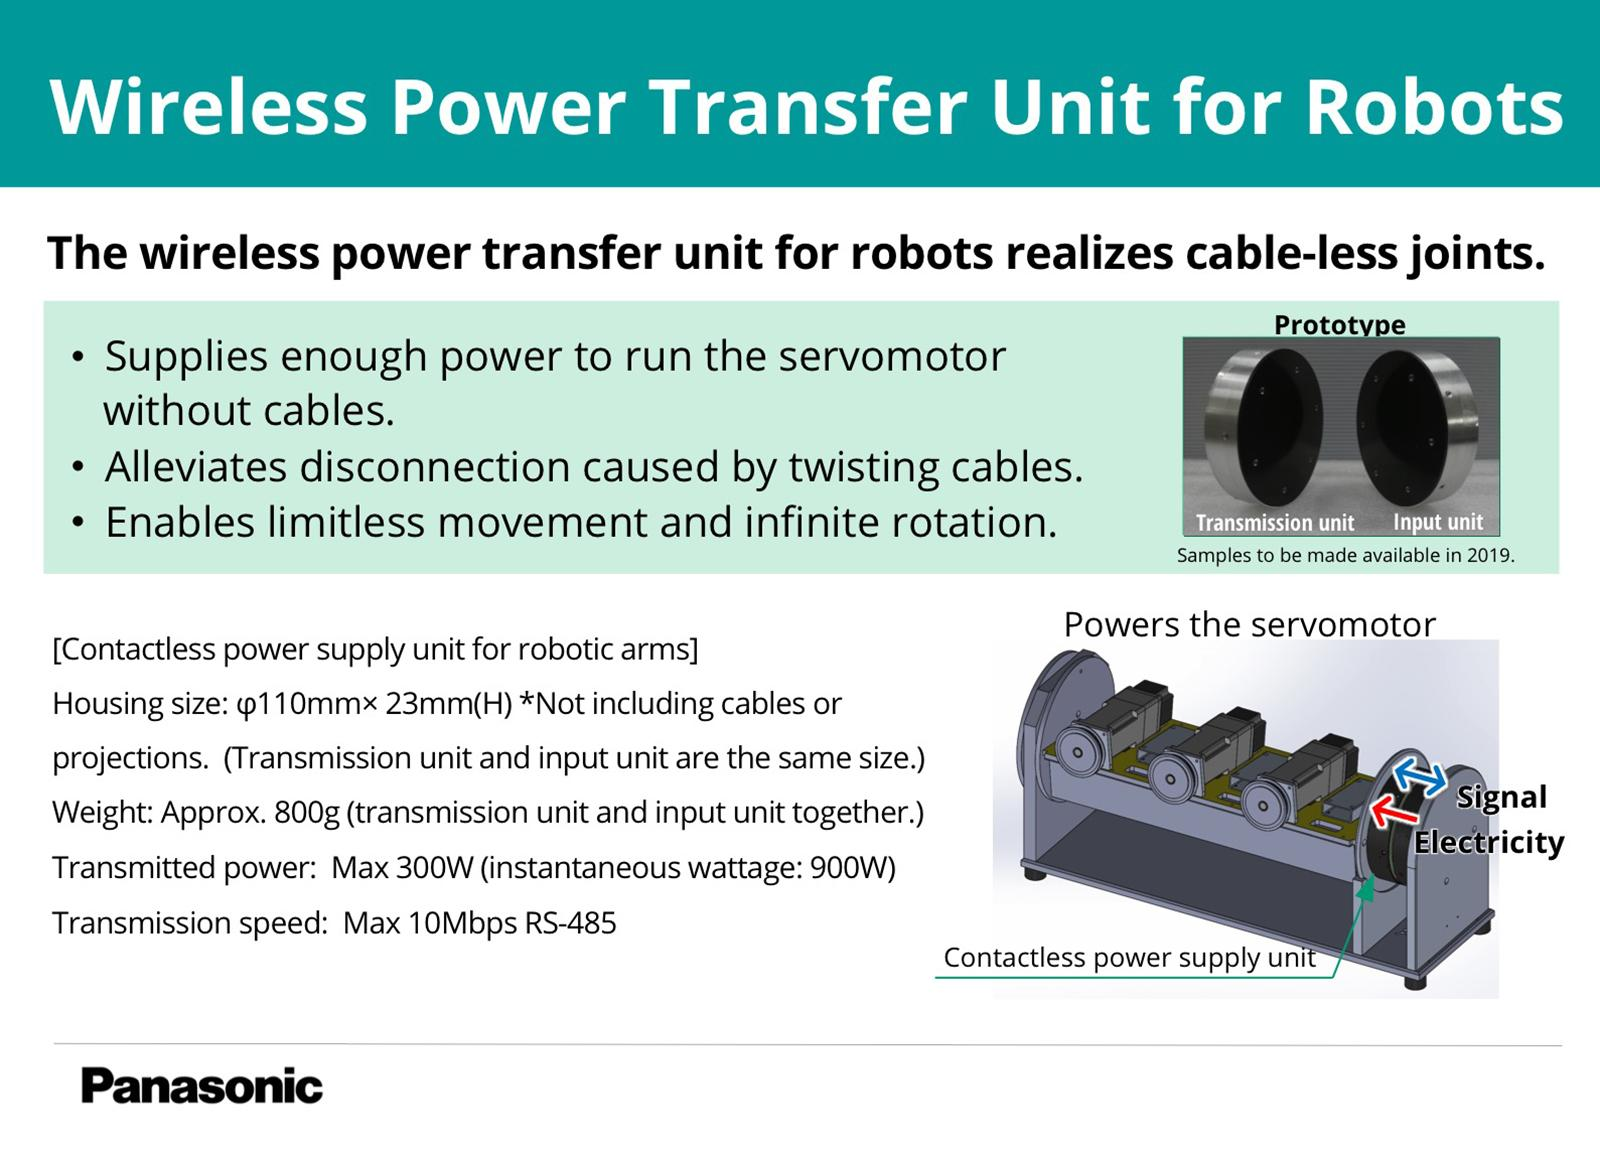 photo: Wireless Power Transfer Unit for Robots